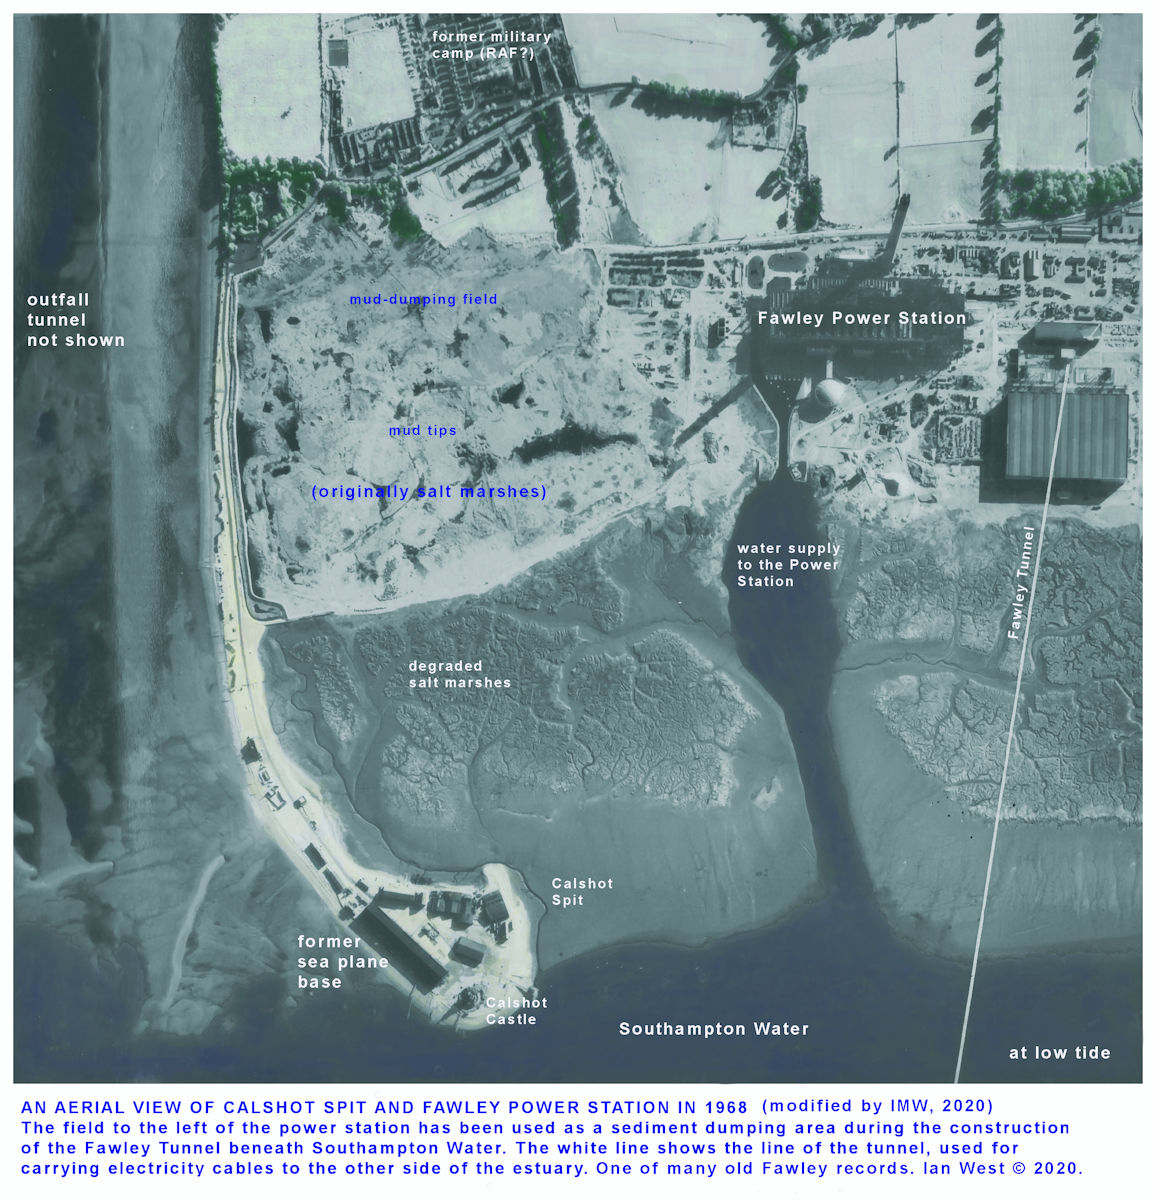 A modified, old aerial photograph of Calshot Spit and the Fawley Power Station area, the original was taken in 1968